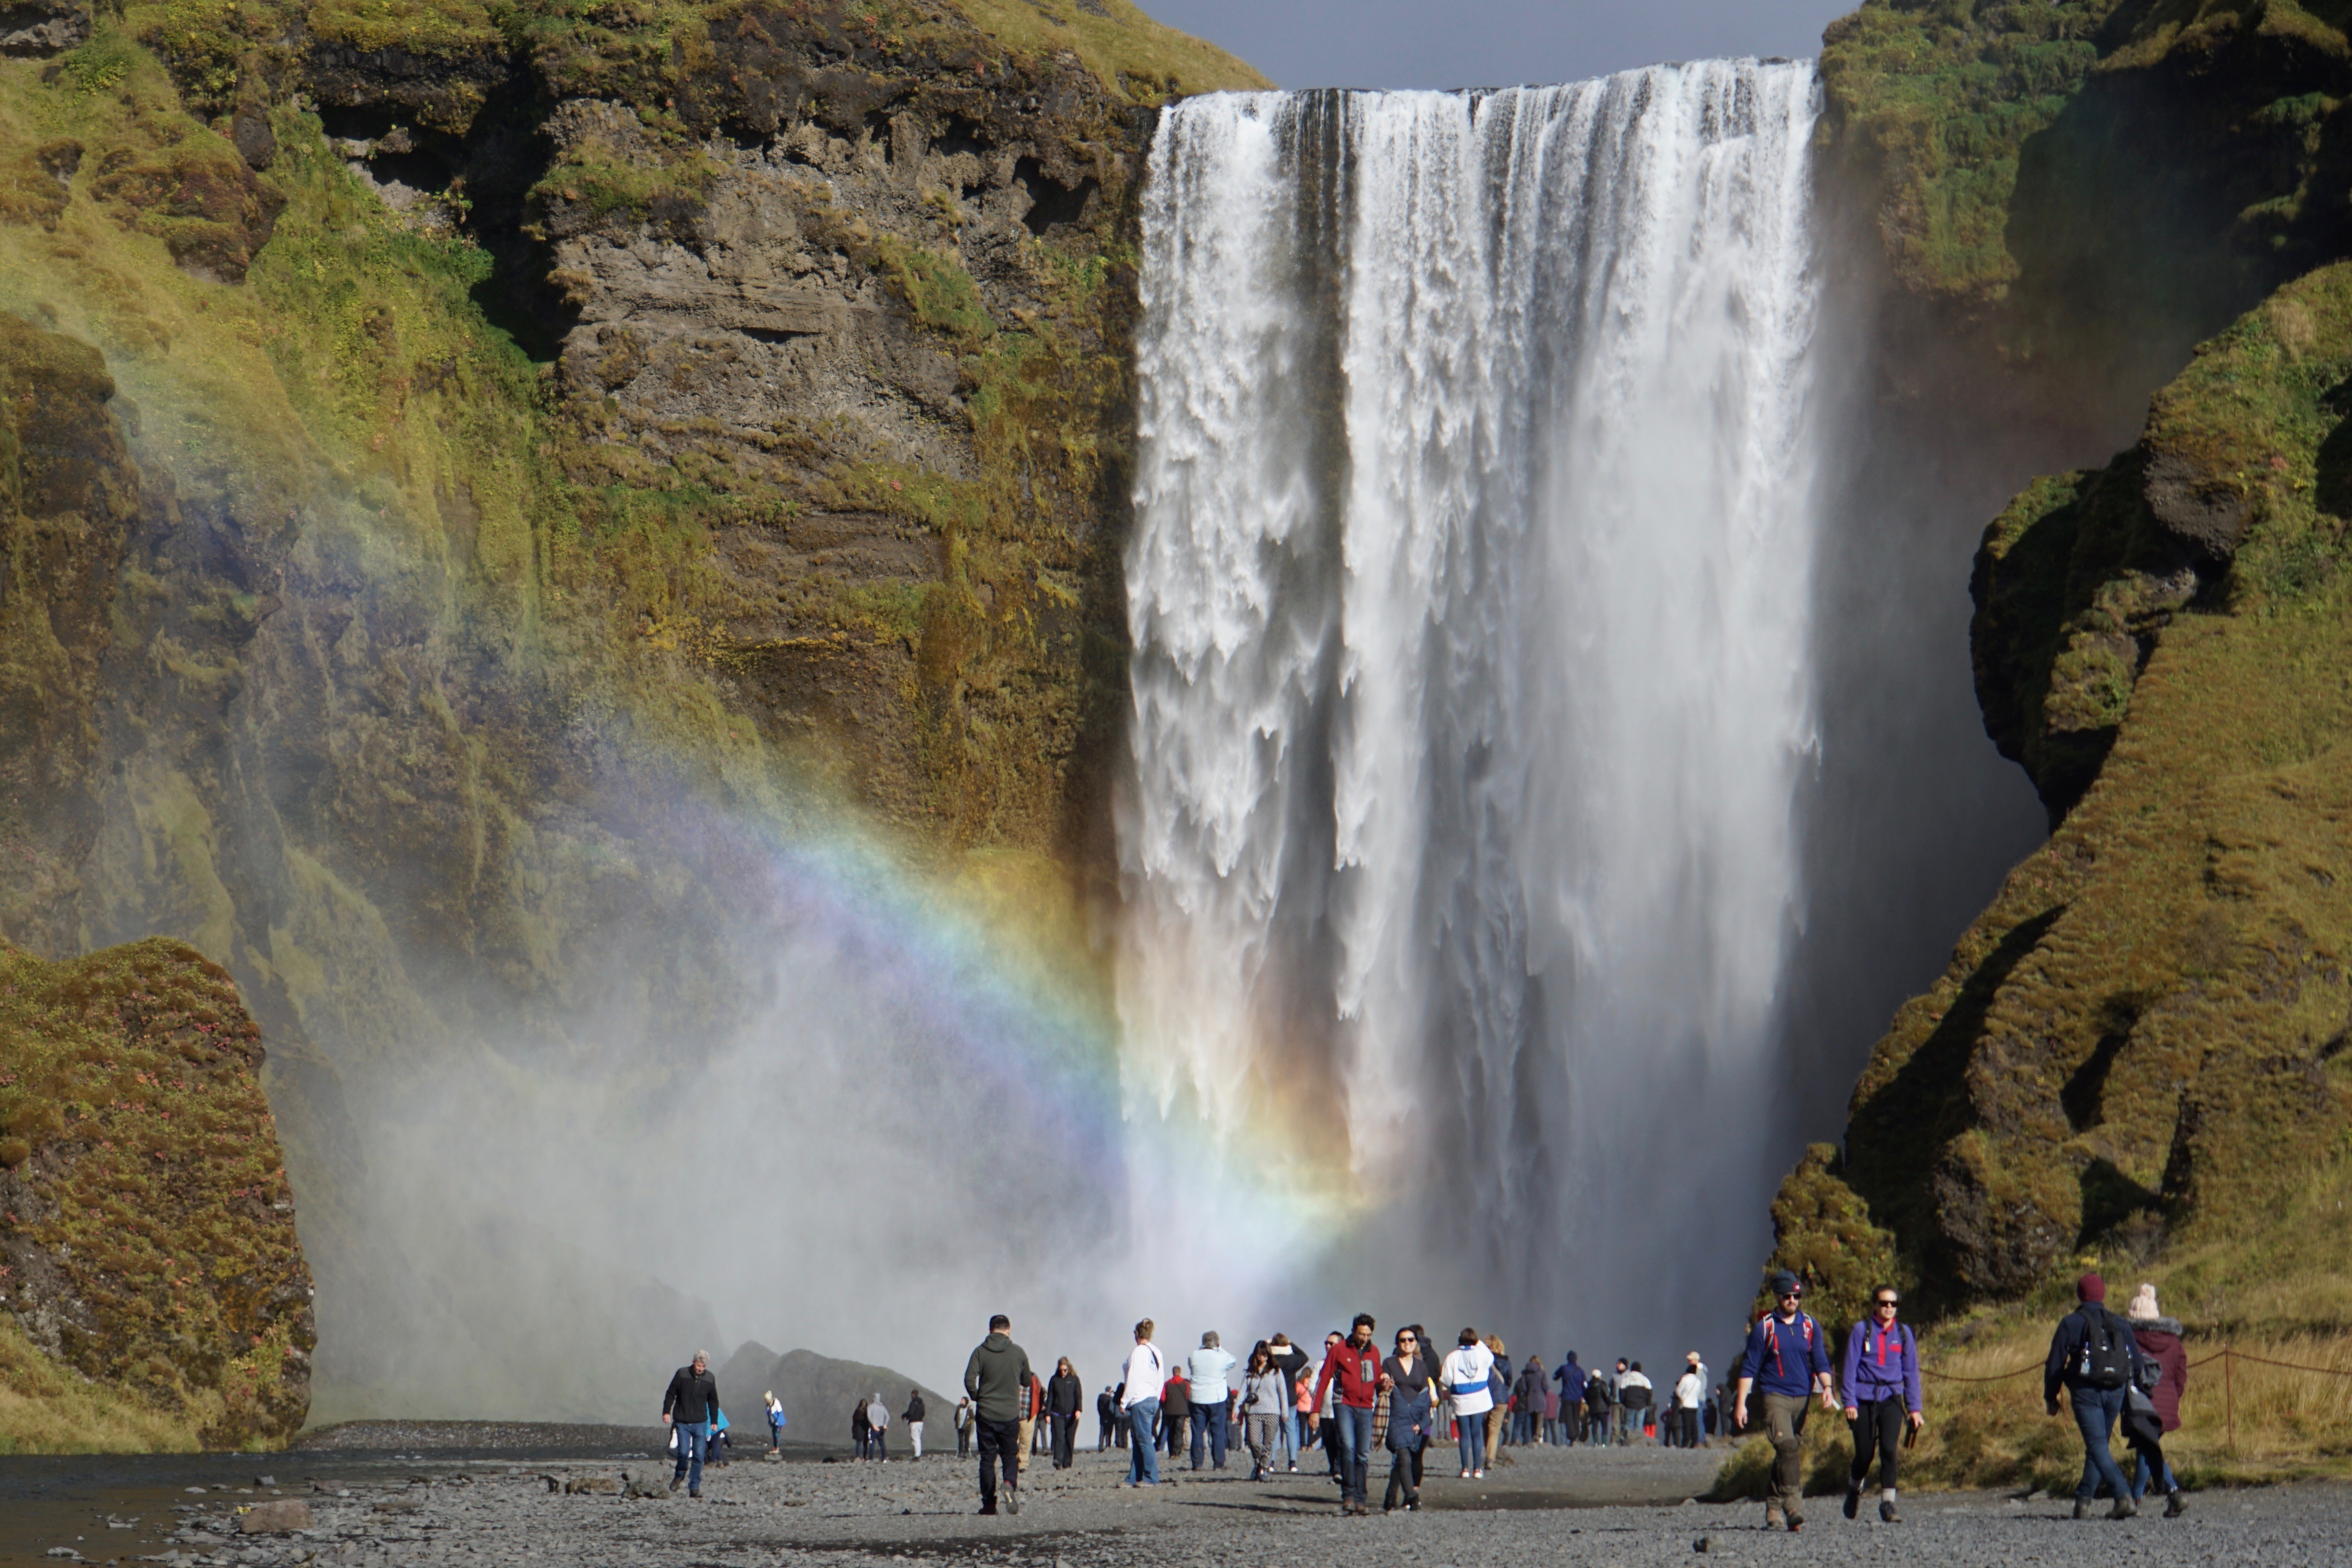 It is often possible to see more than one rainbow on sunny days at the fabulous Skógafoss waterfall.